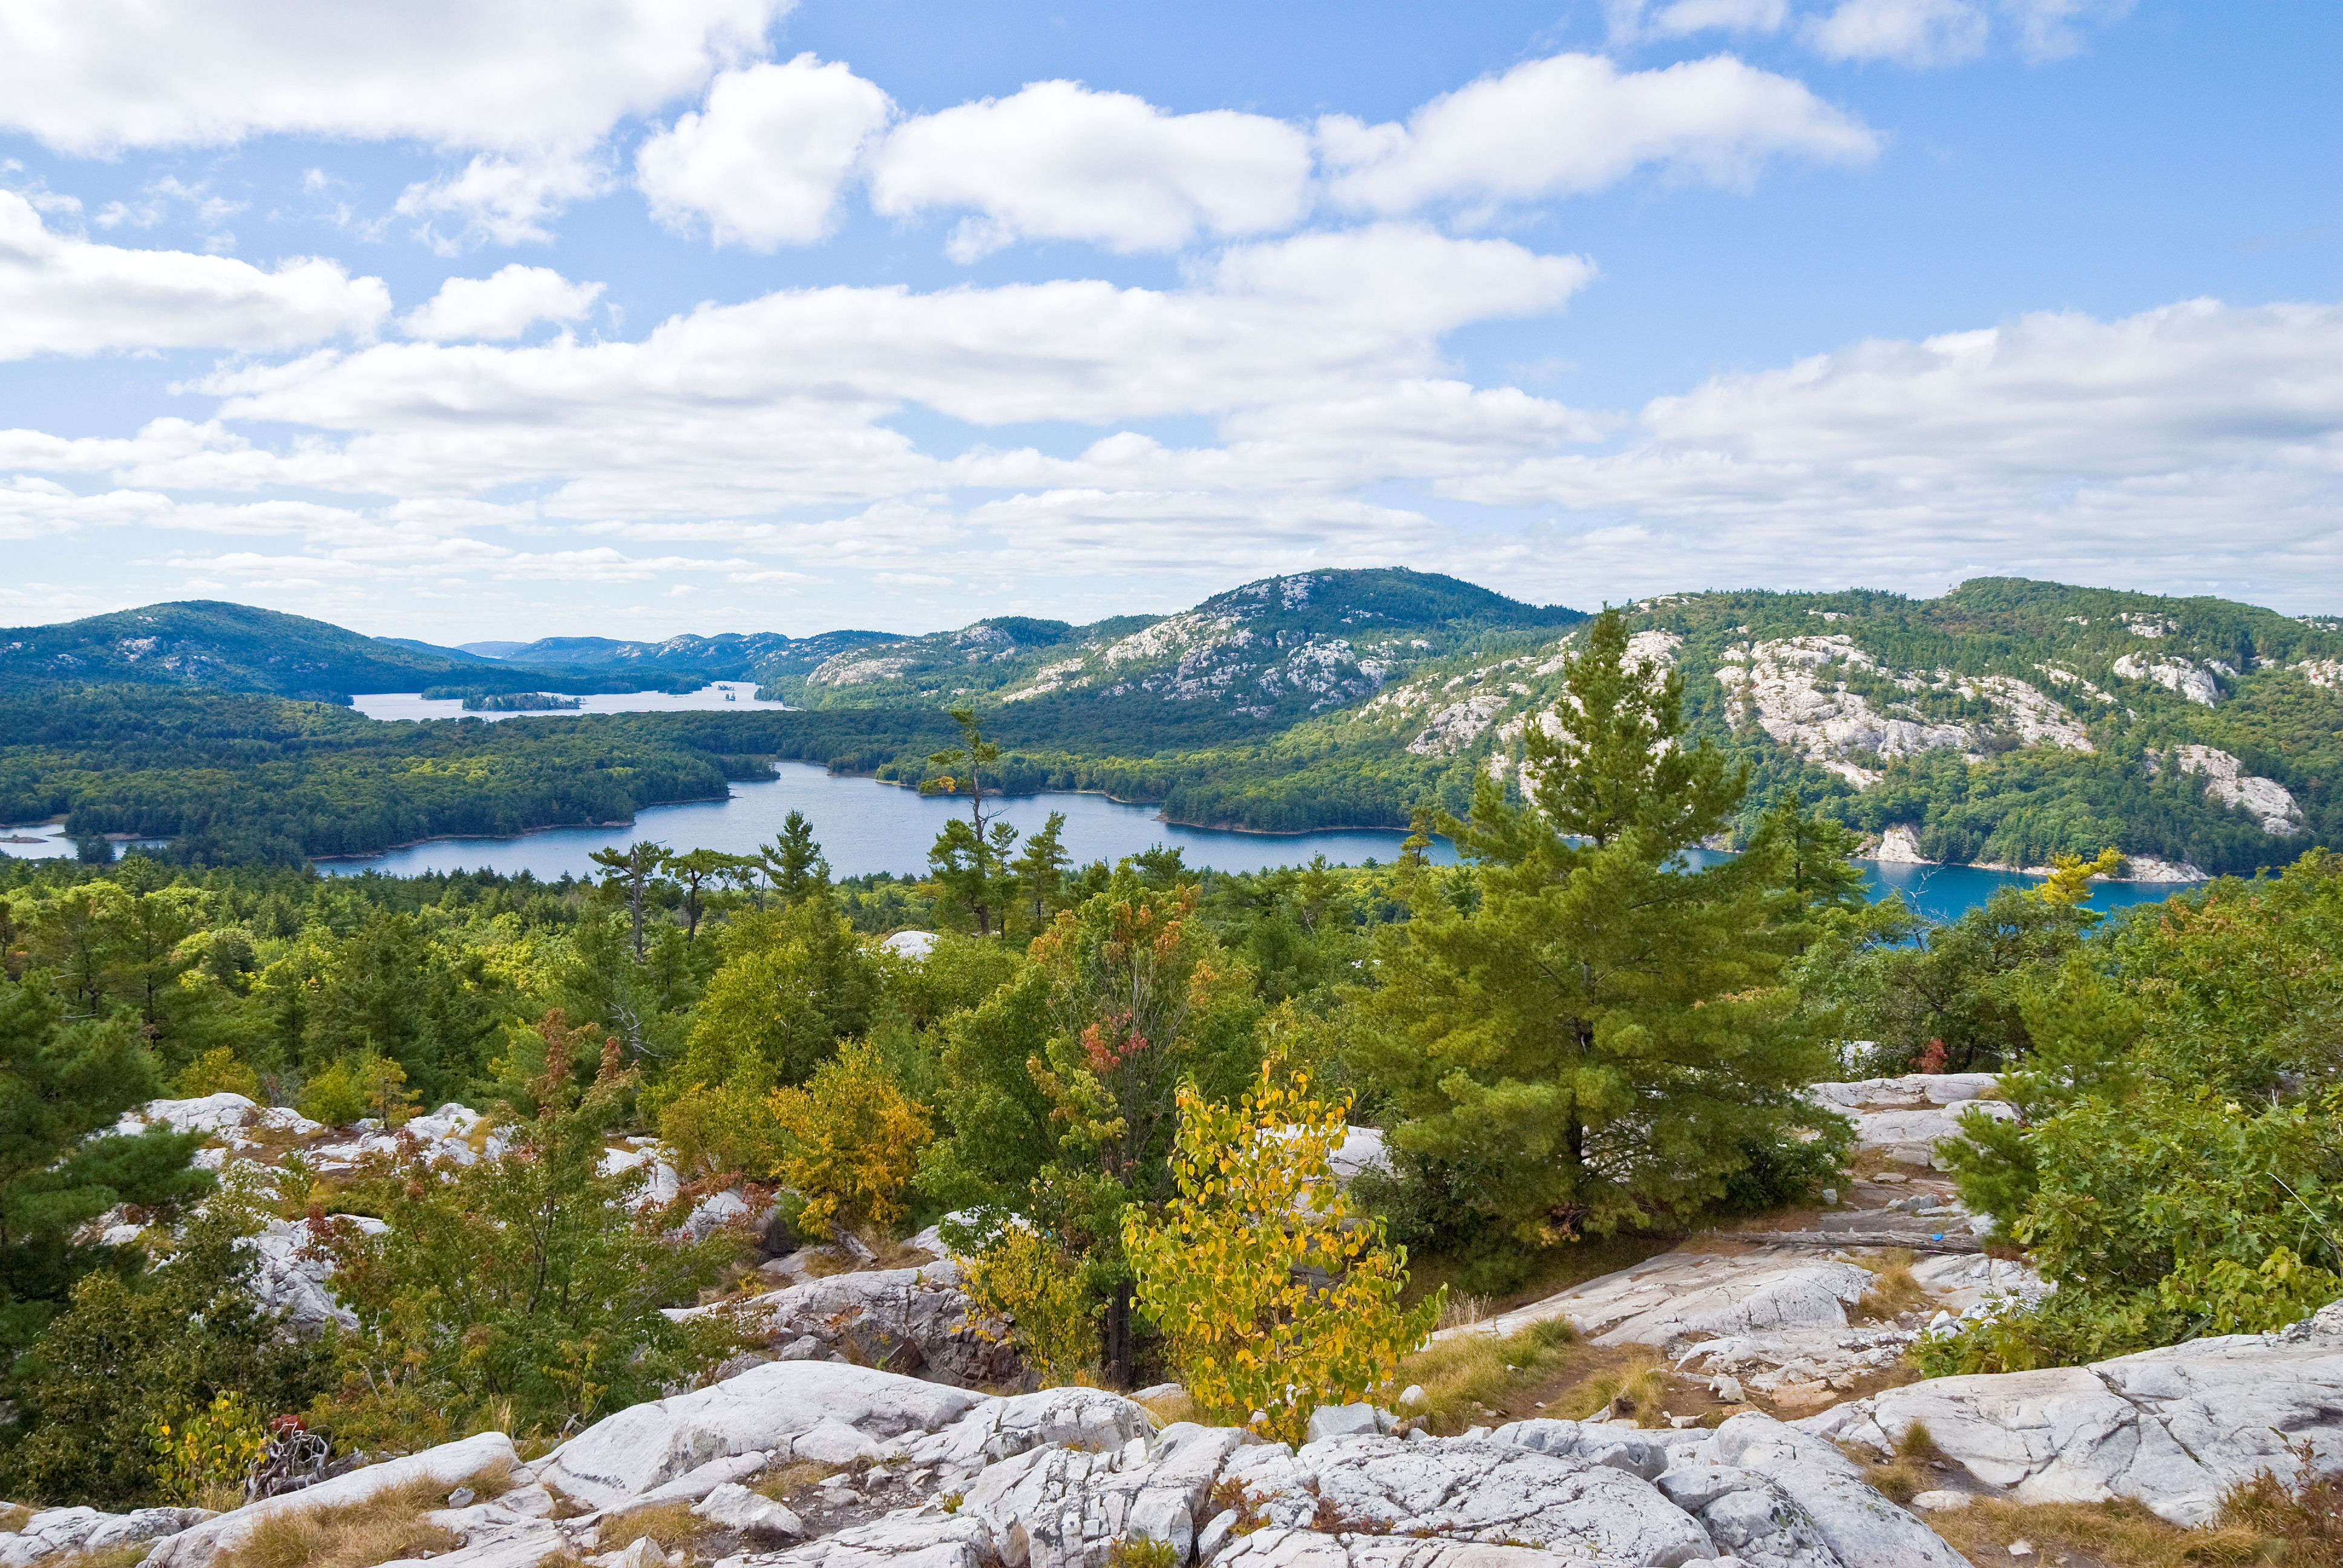 View from mountain top in Ontario